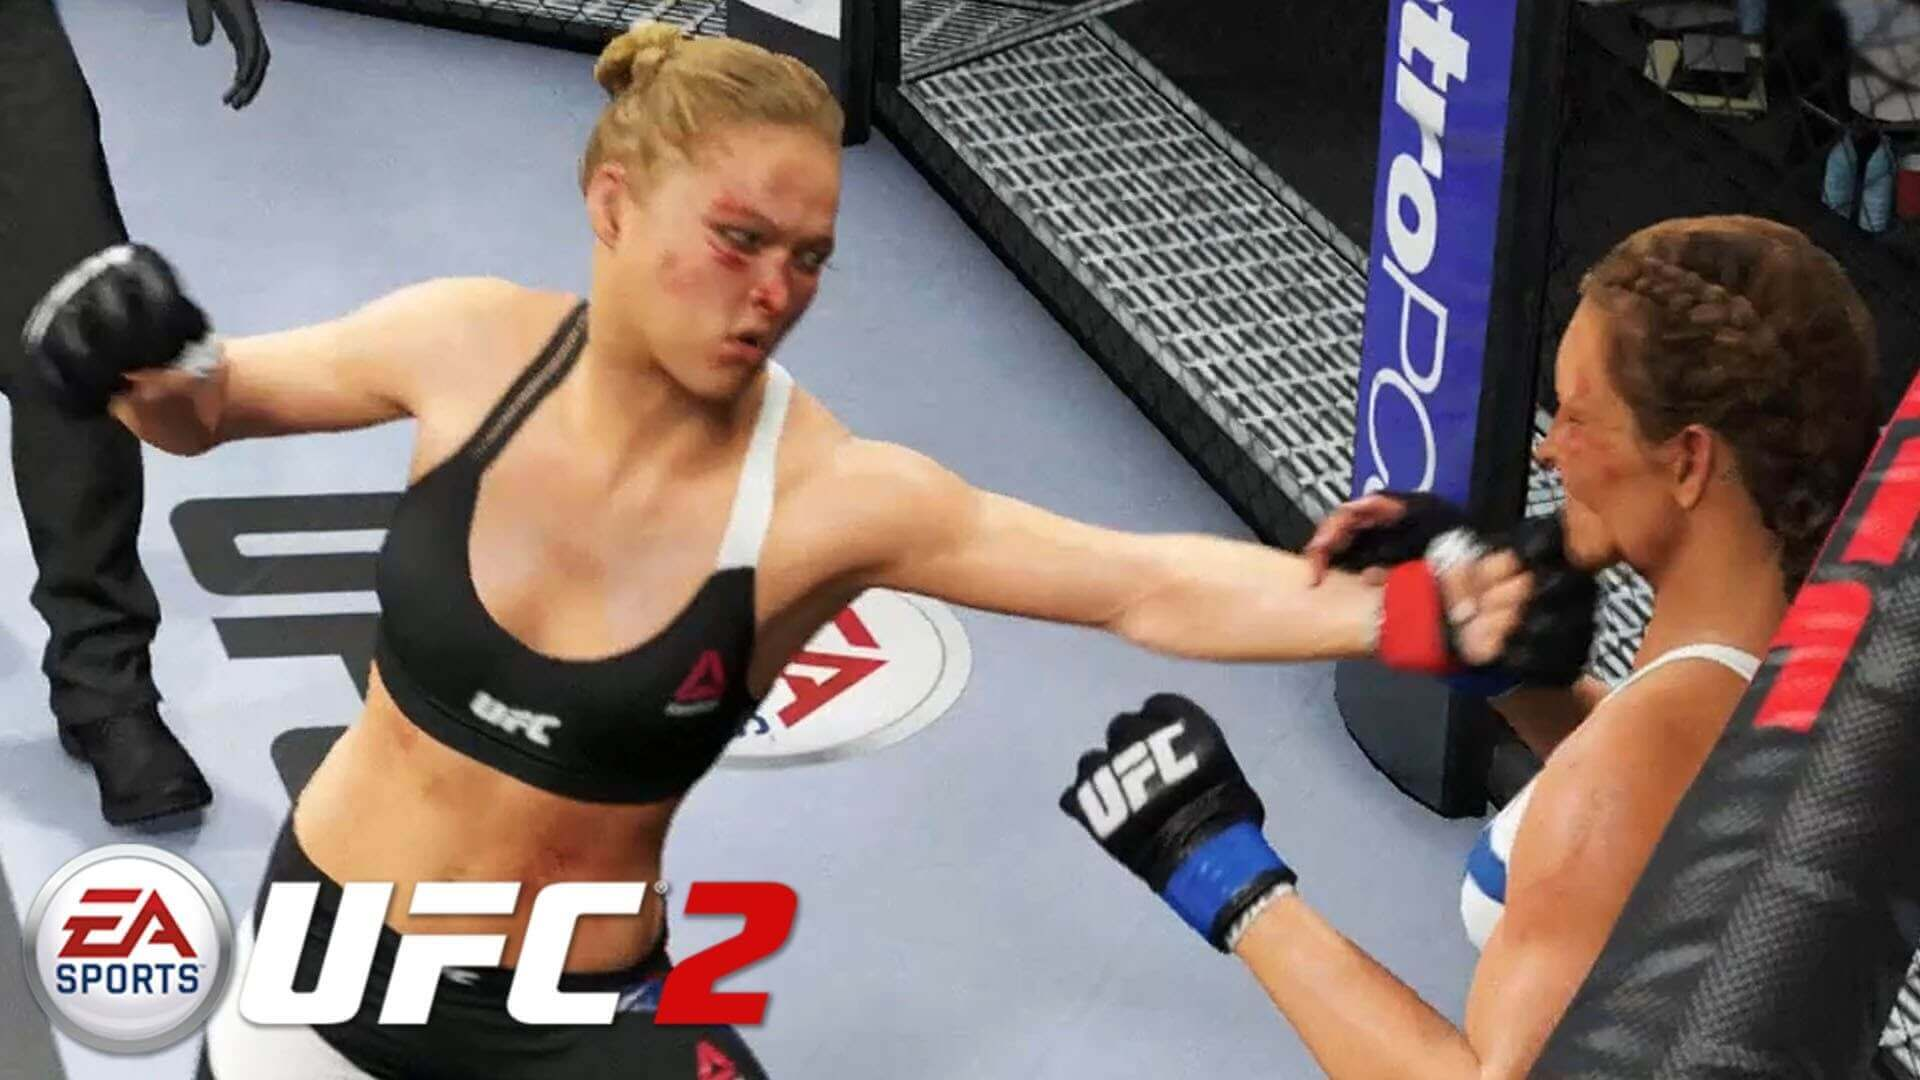 Sony Ps4 Ea Sports Ufc 2 Buy Games To Progress Your Fighters And Earn Coins That Open Packs Which Deliver Special Items Used Sculpt Team Into The Most Explosive In